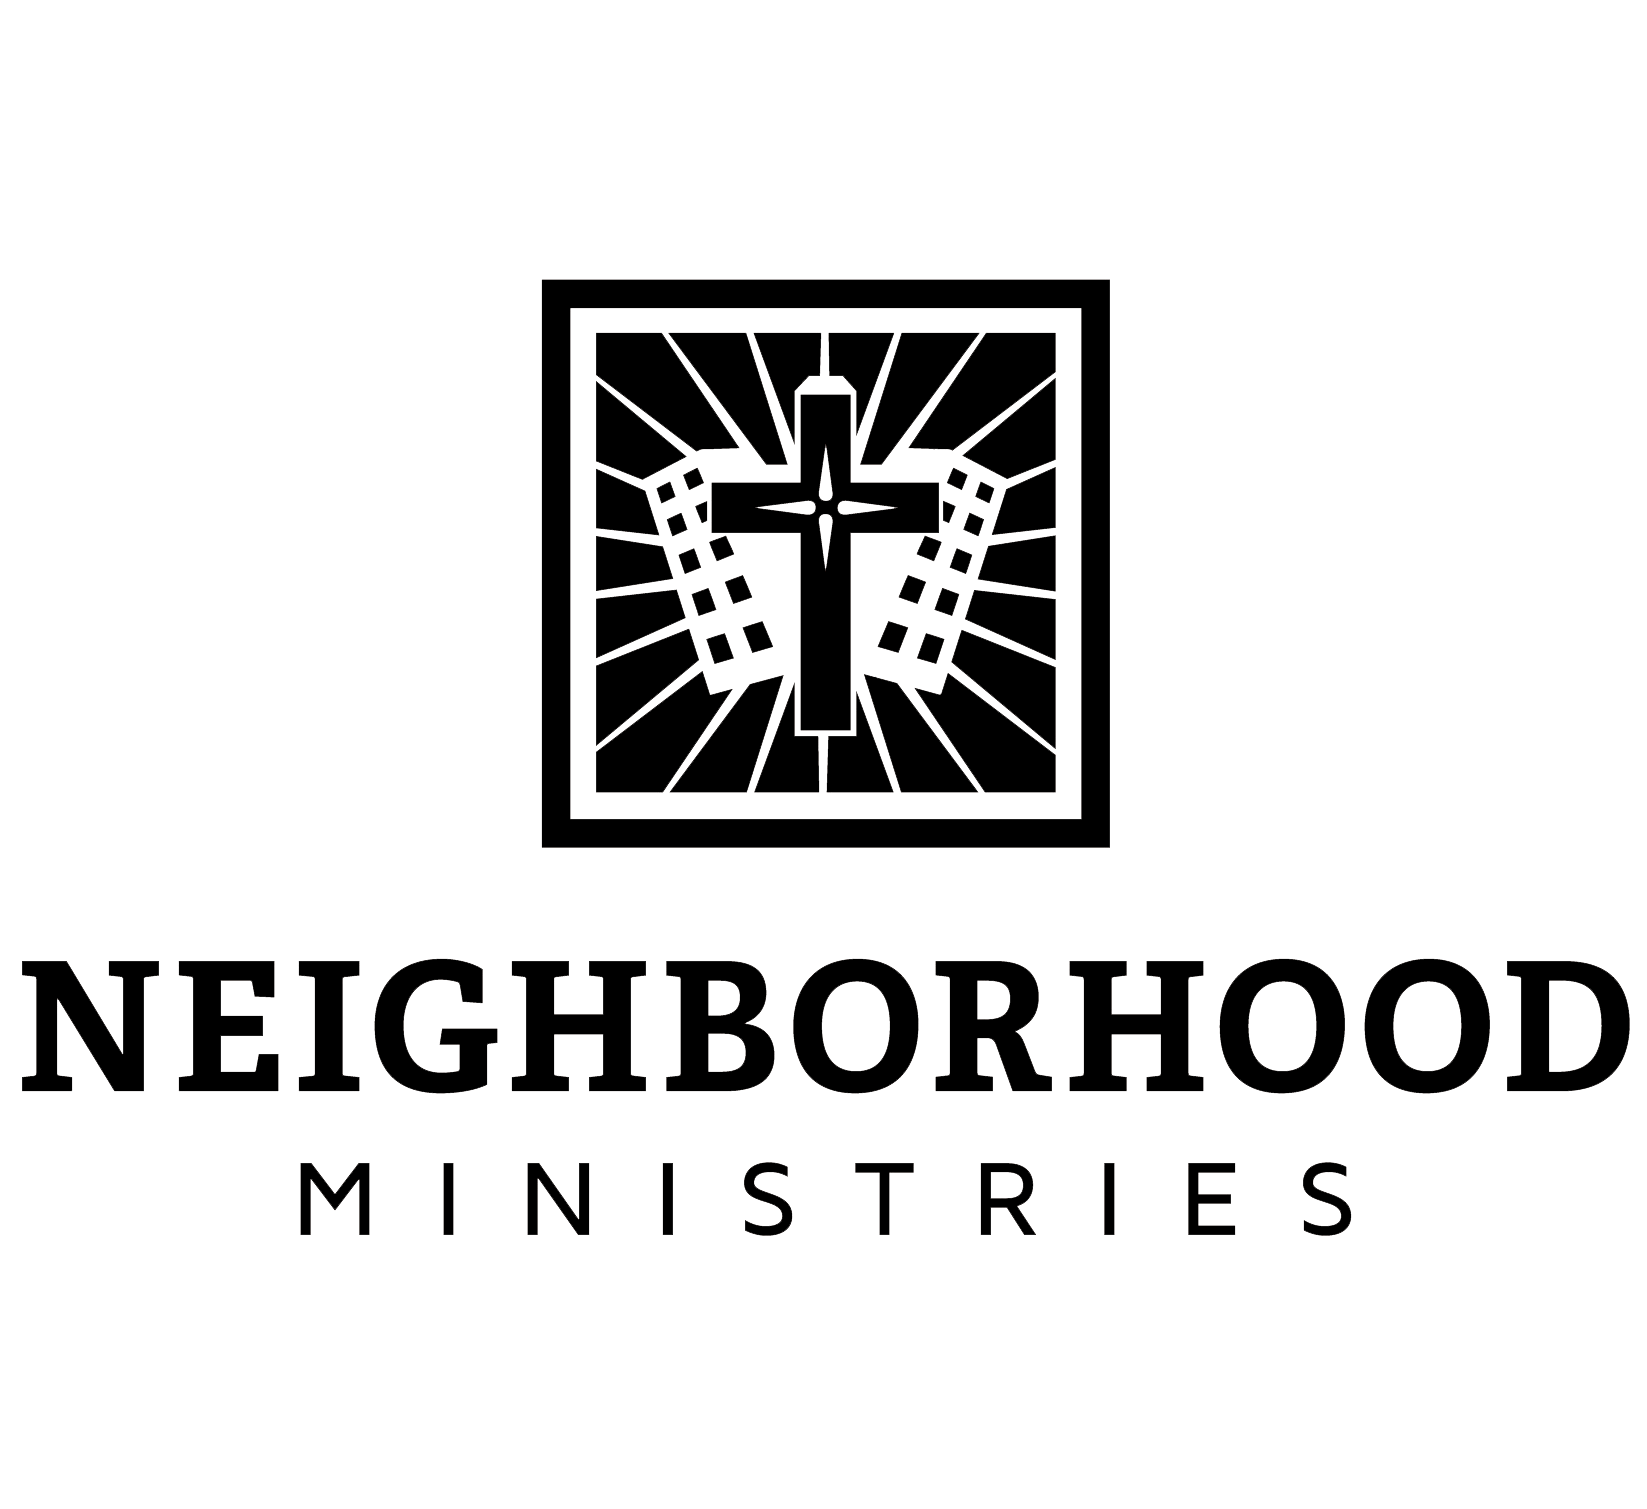 neighborhood ministries.png